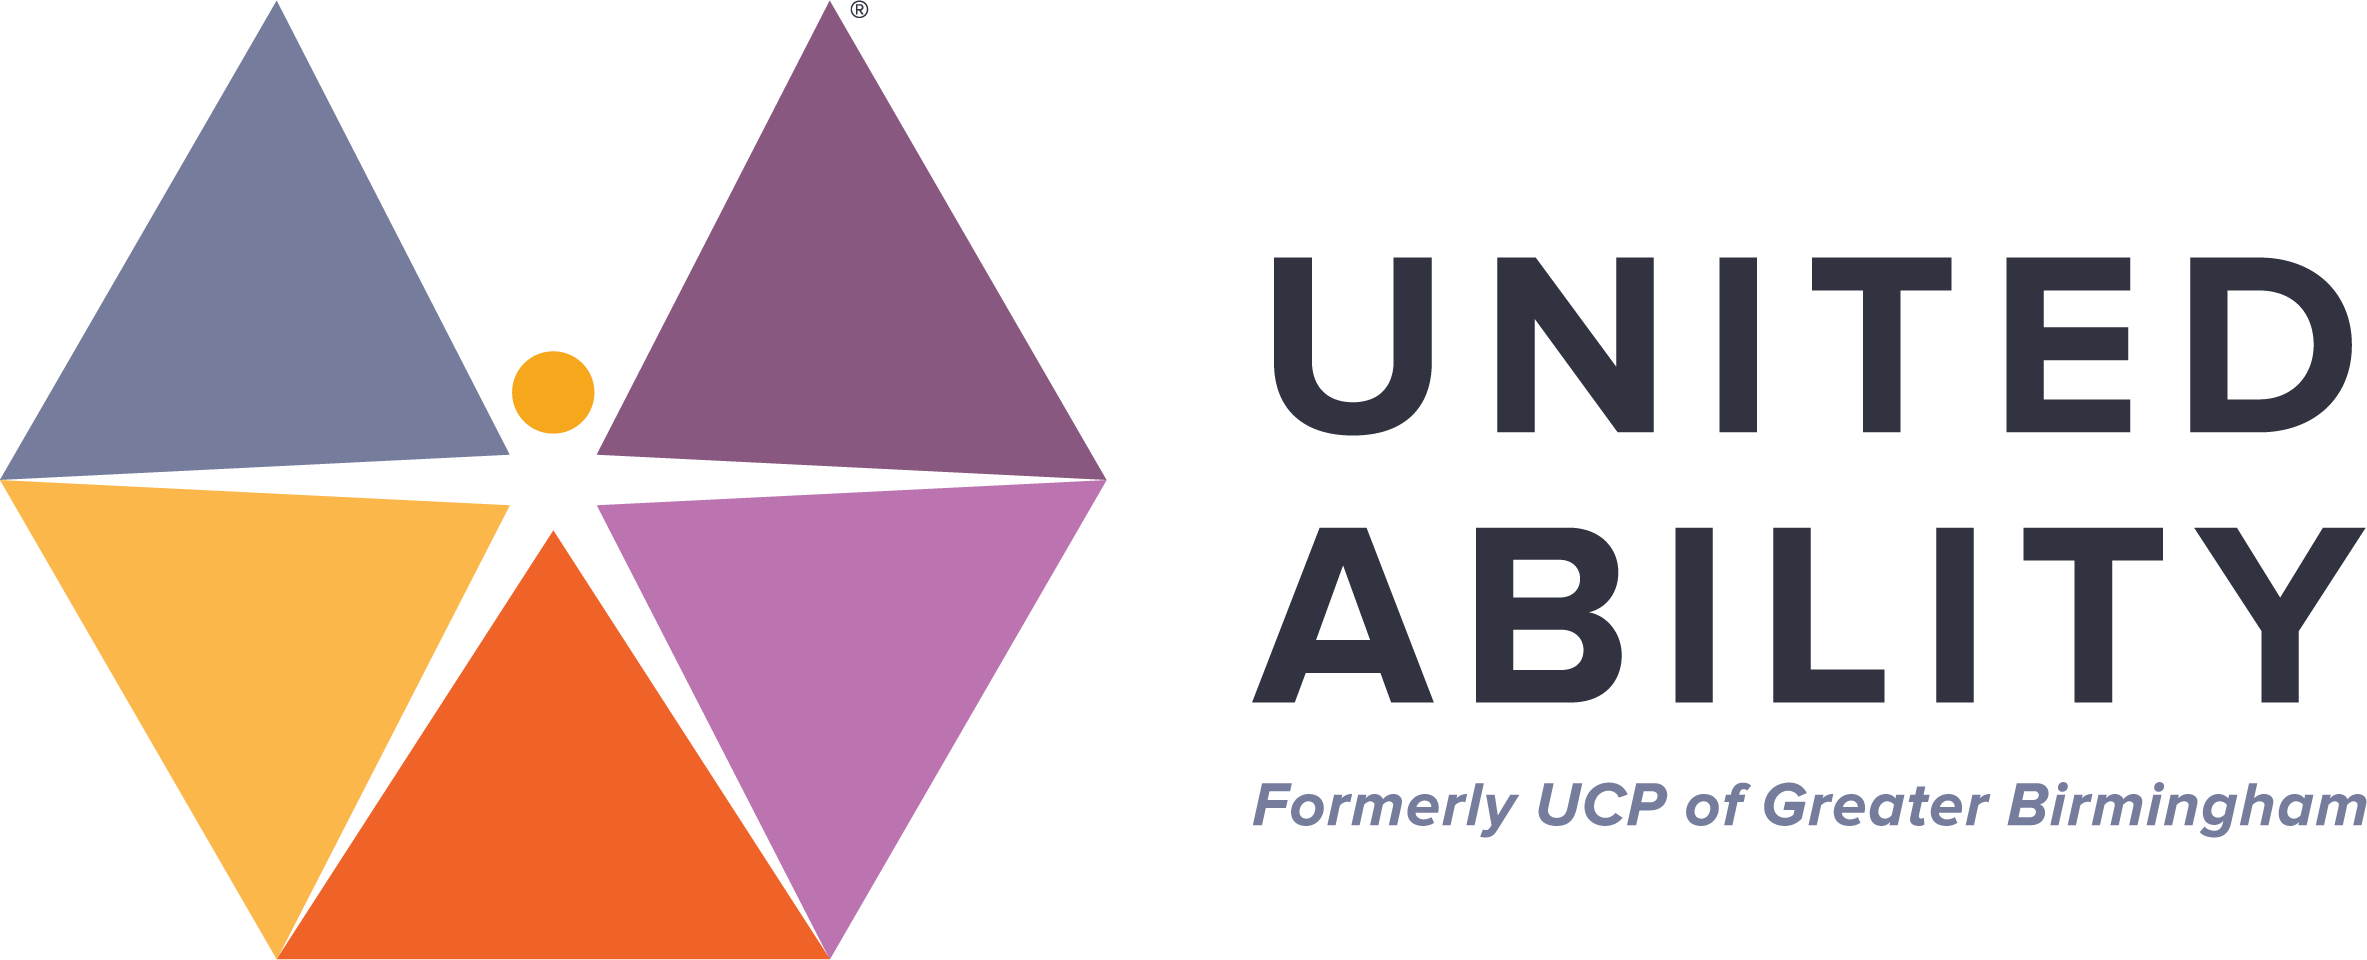 cropped-UA_Logo_FullColor_Formerly_horizontal.png